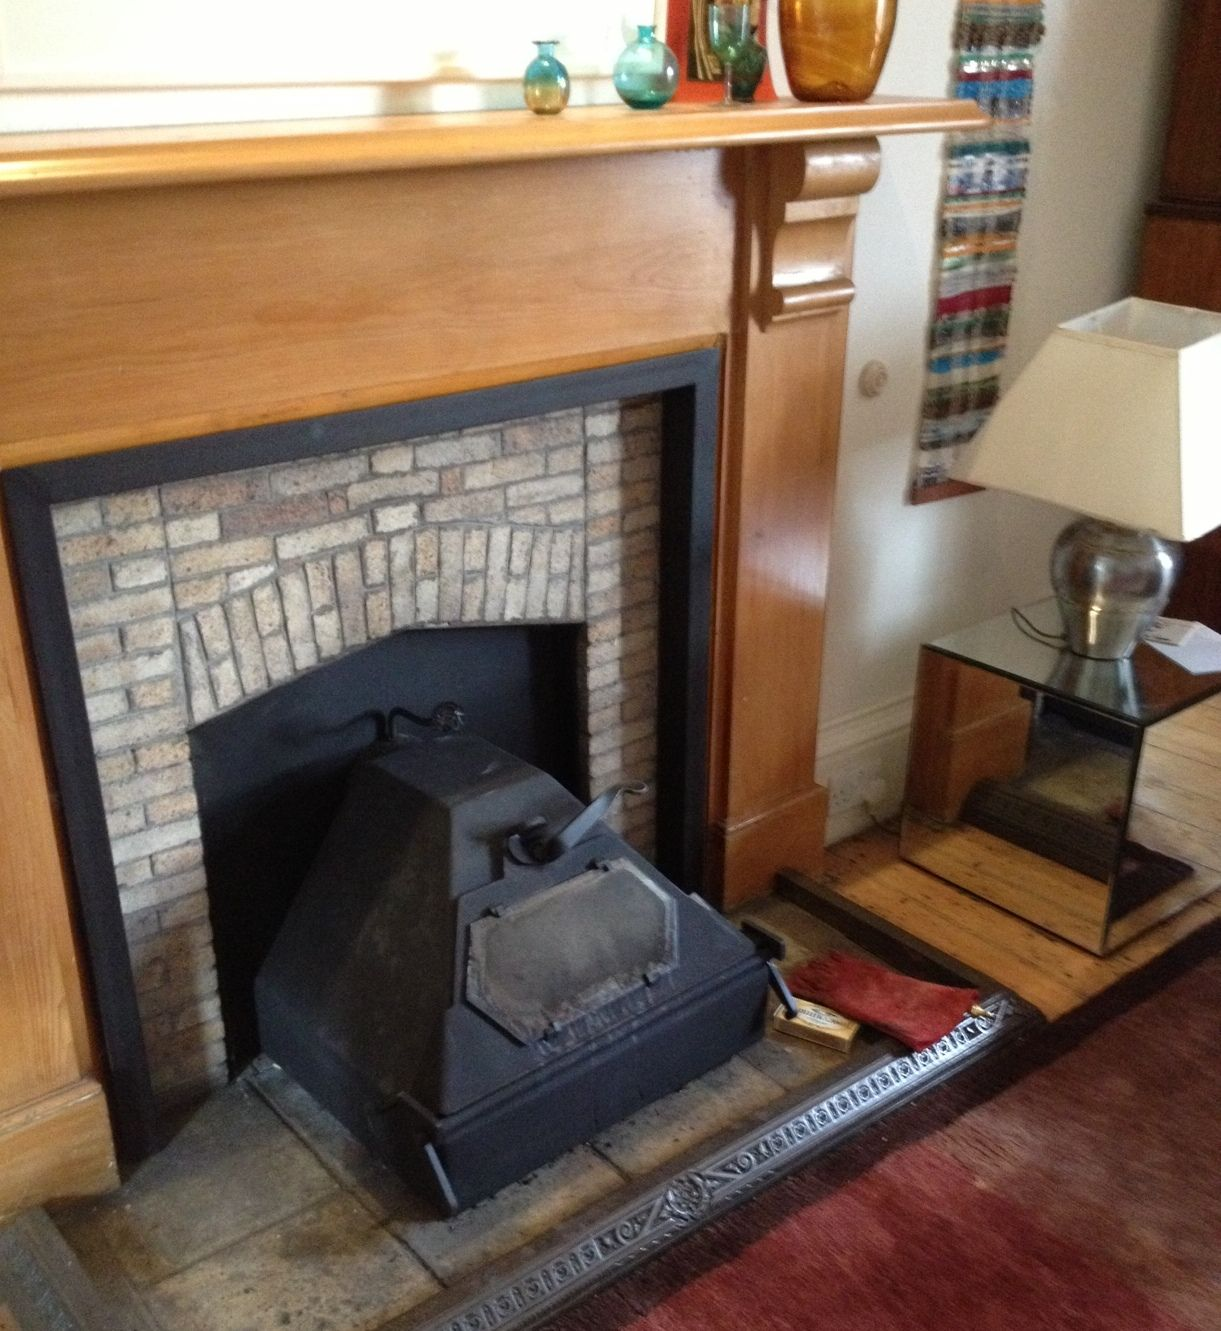 another dowling stove aztec 10 wood burner technology that i